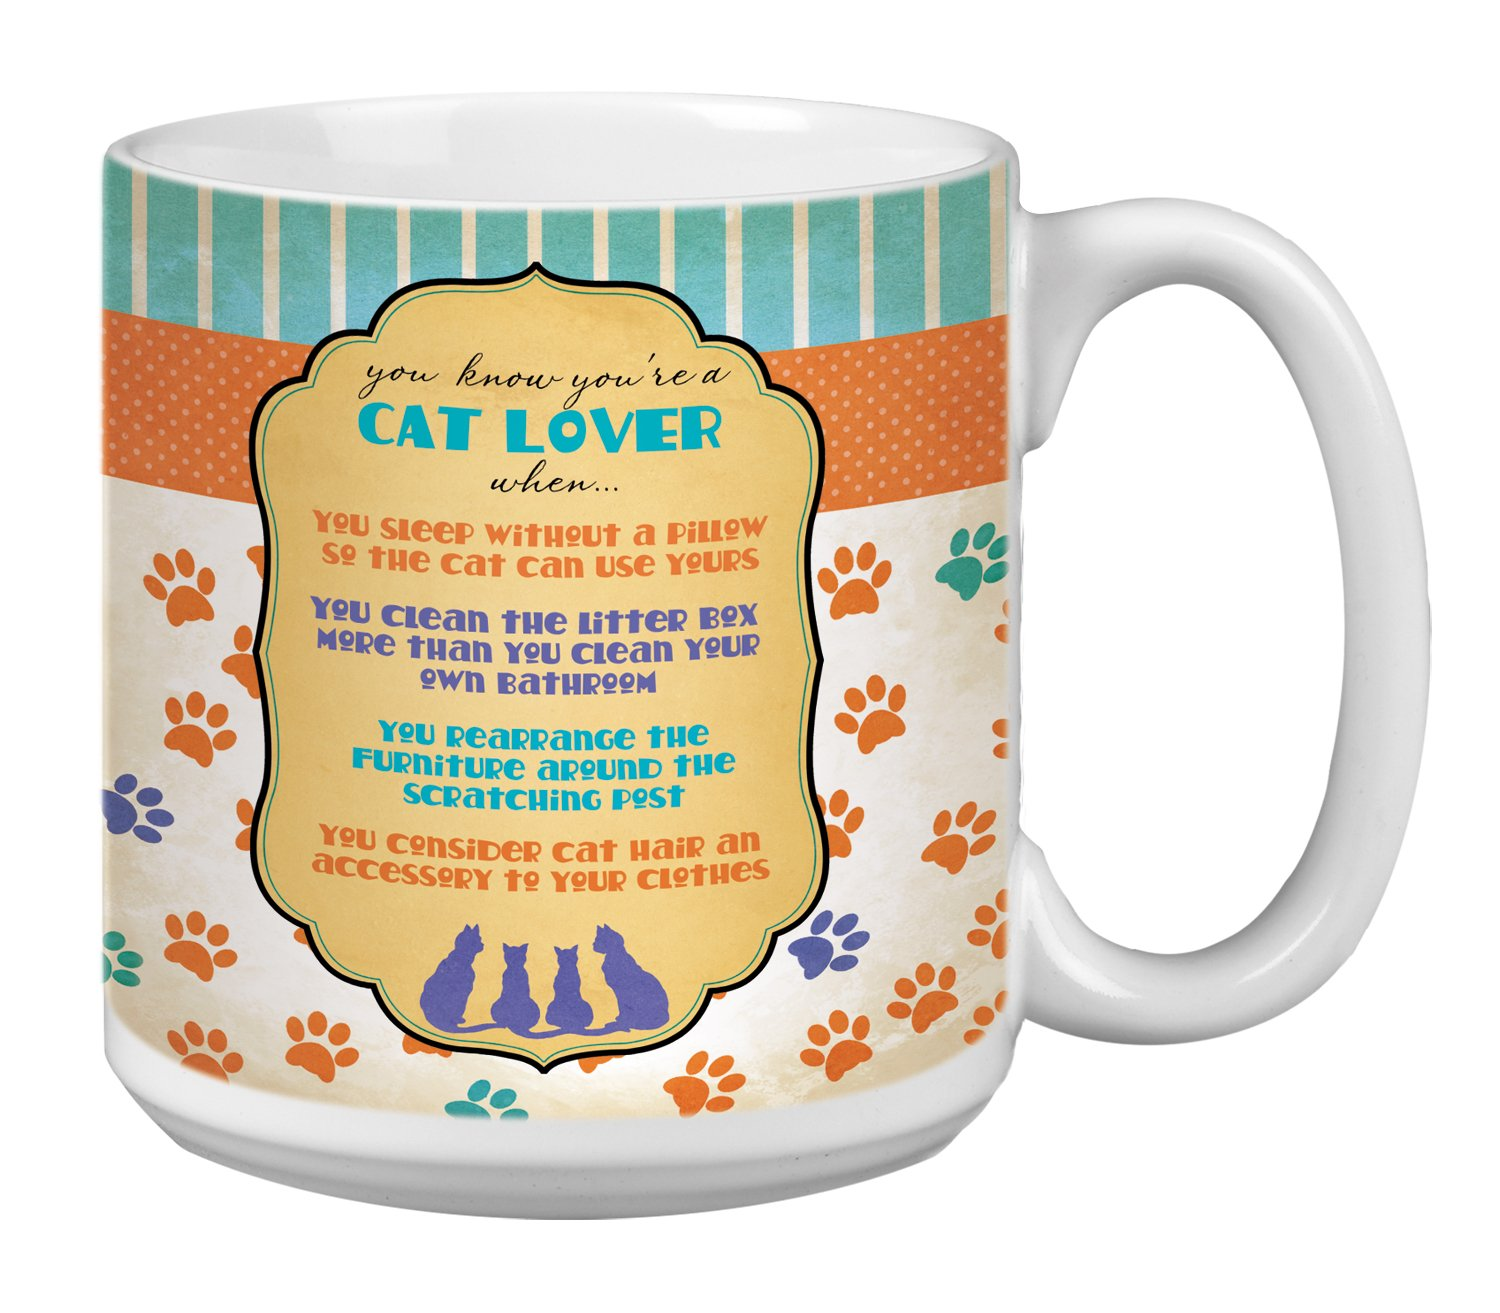 XM63175 Tree-Free Greetings Extra Large 20-Ounce Ceramic Coffee Mug Cat Lover Themed Pet Art